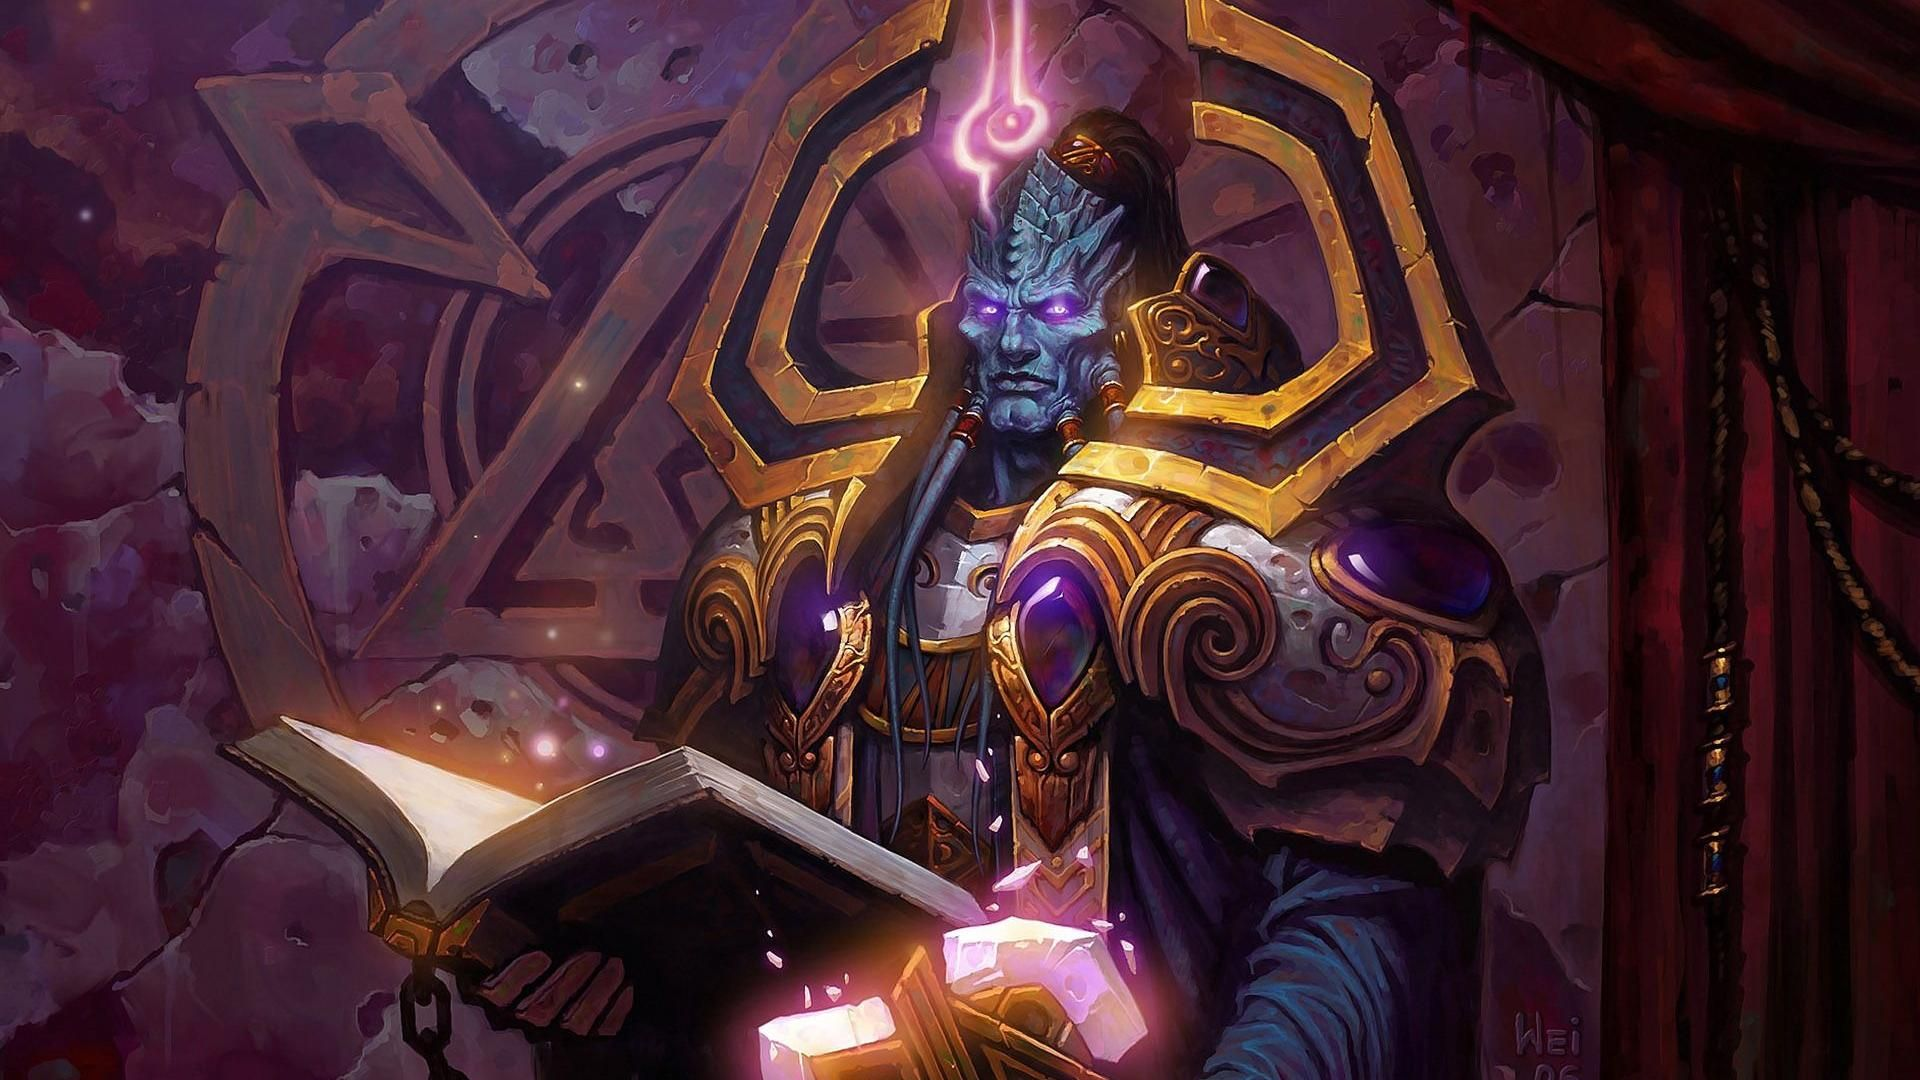 Undefined Wow Paladin Wallpaper 44 Wallpapers Adorable Wallpapers Warcraft Art World Of Warcraft World Of Warcraft Game